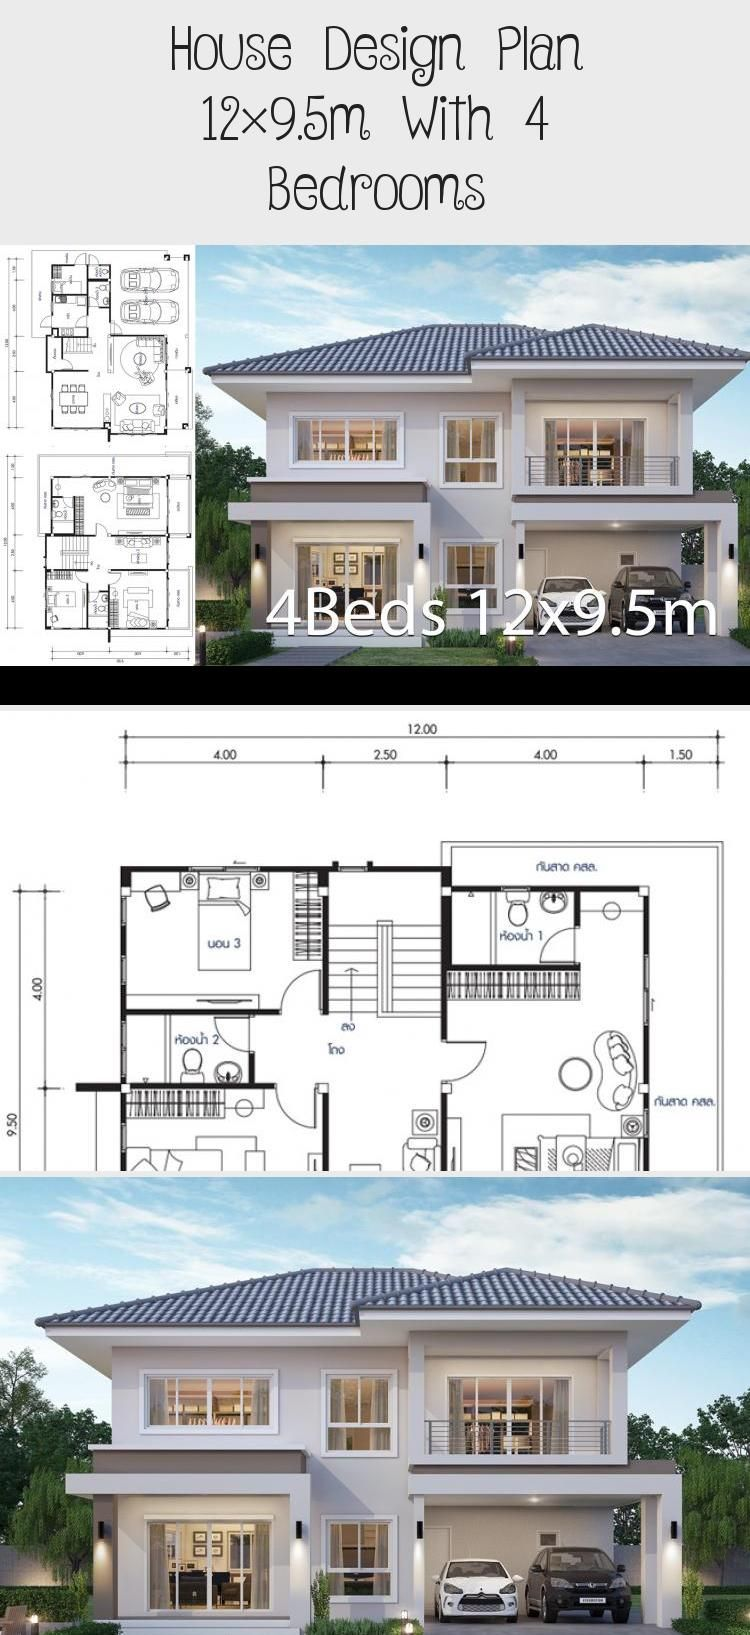 House Design Plan 12x9 5m With 4 Bedrooms Home Design With Plansearch Dreamhouseplans Housep In 2020 Home Design Plans Affordable House Plans Victorian House Plans